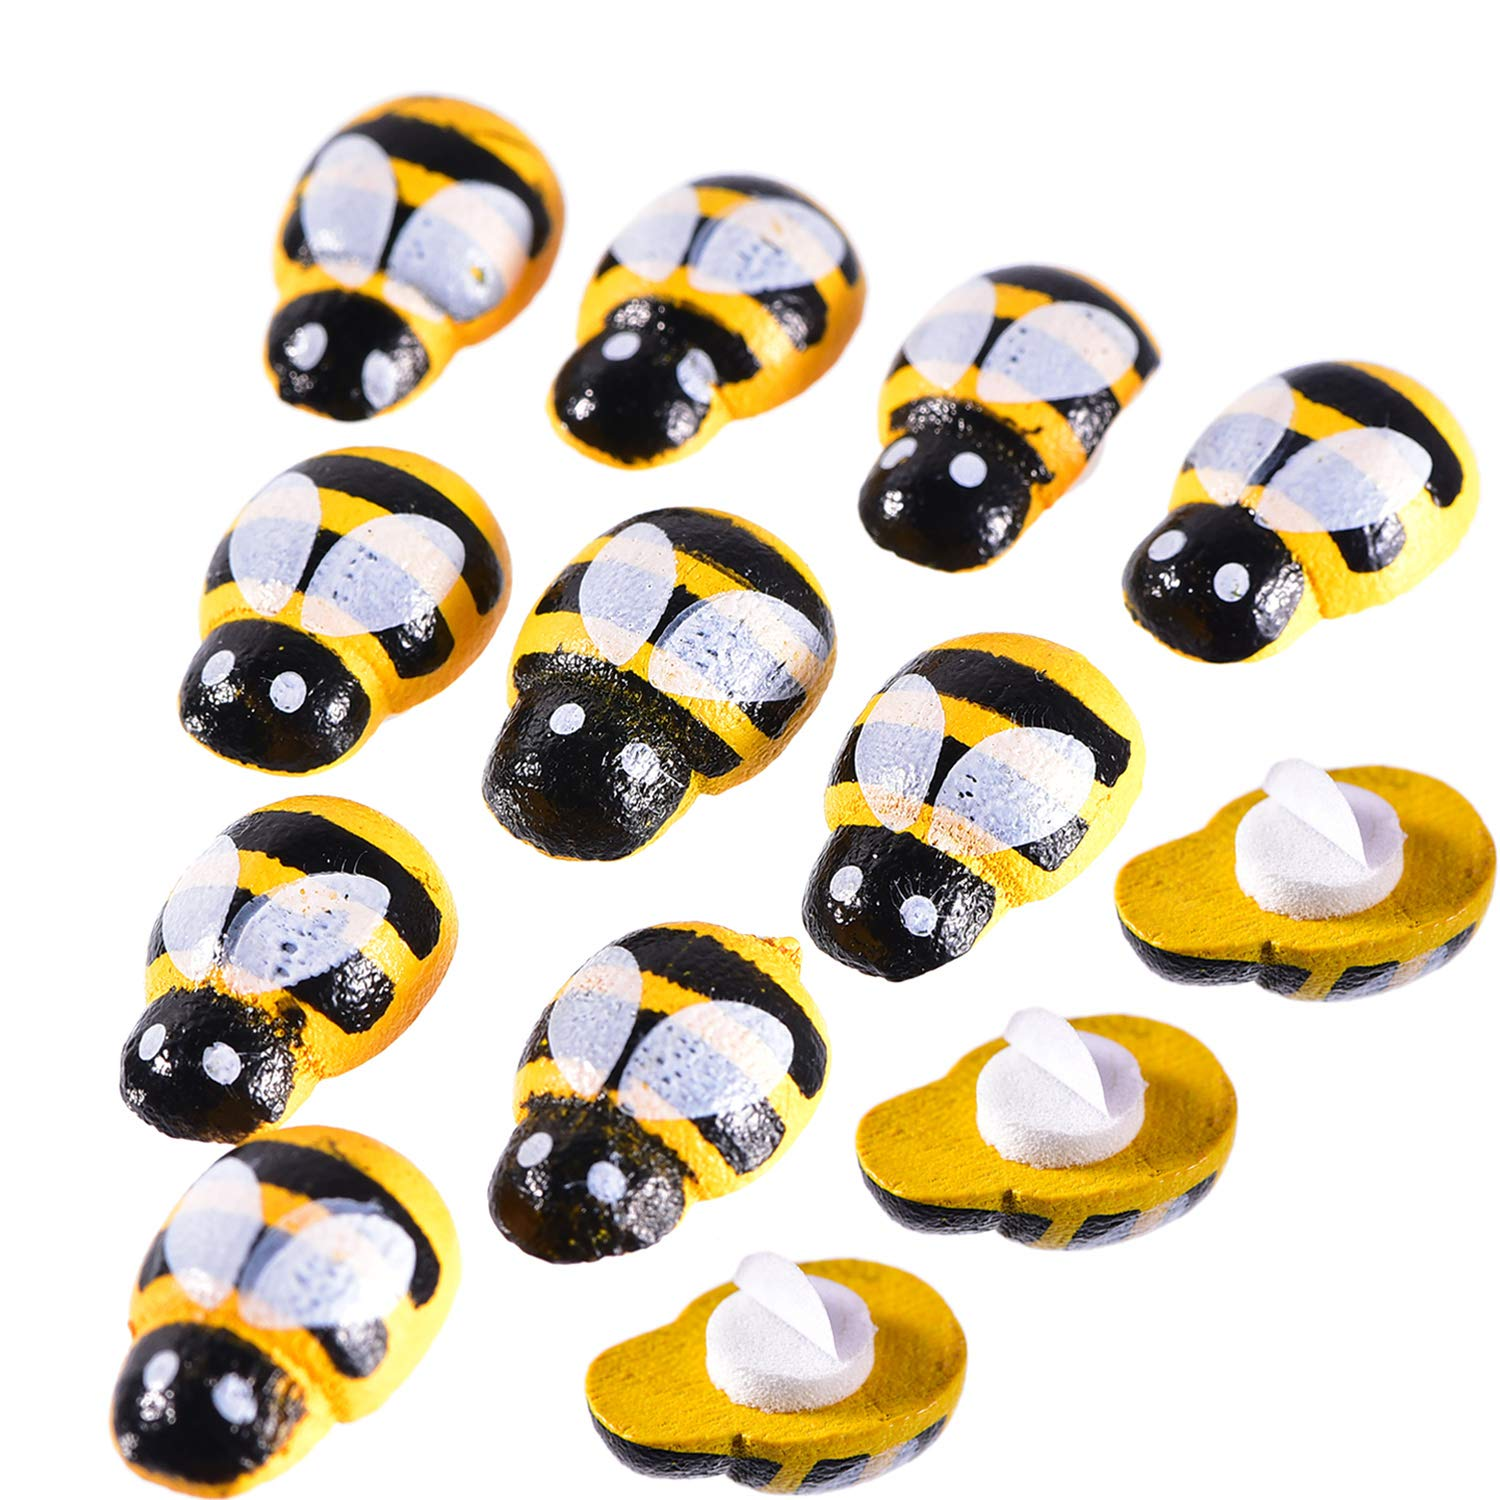 Frienda 150 Pieces Tiny Wooden Bee Embellishments Painted Flatback Wood Bumble Bee Pieces with Adhesive and Velvet Bag for Craft Decoration Scrapbooking DIY 4336983832